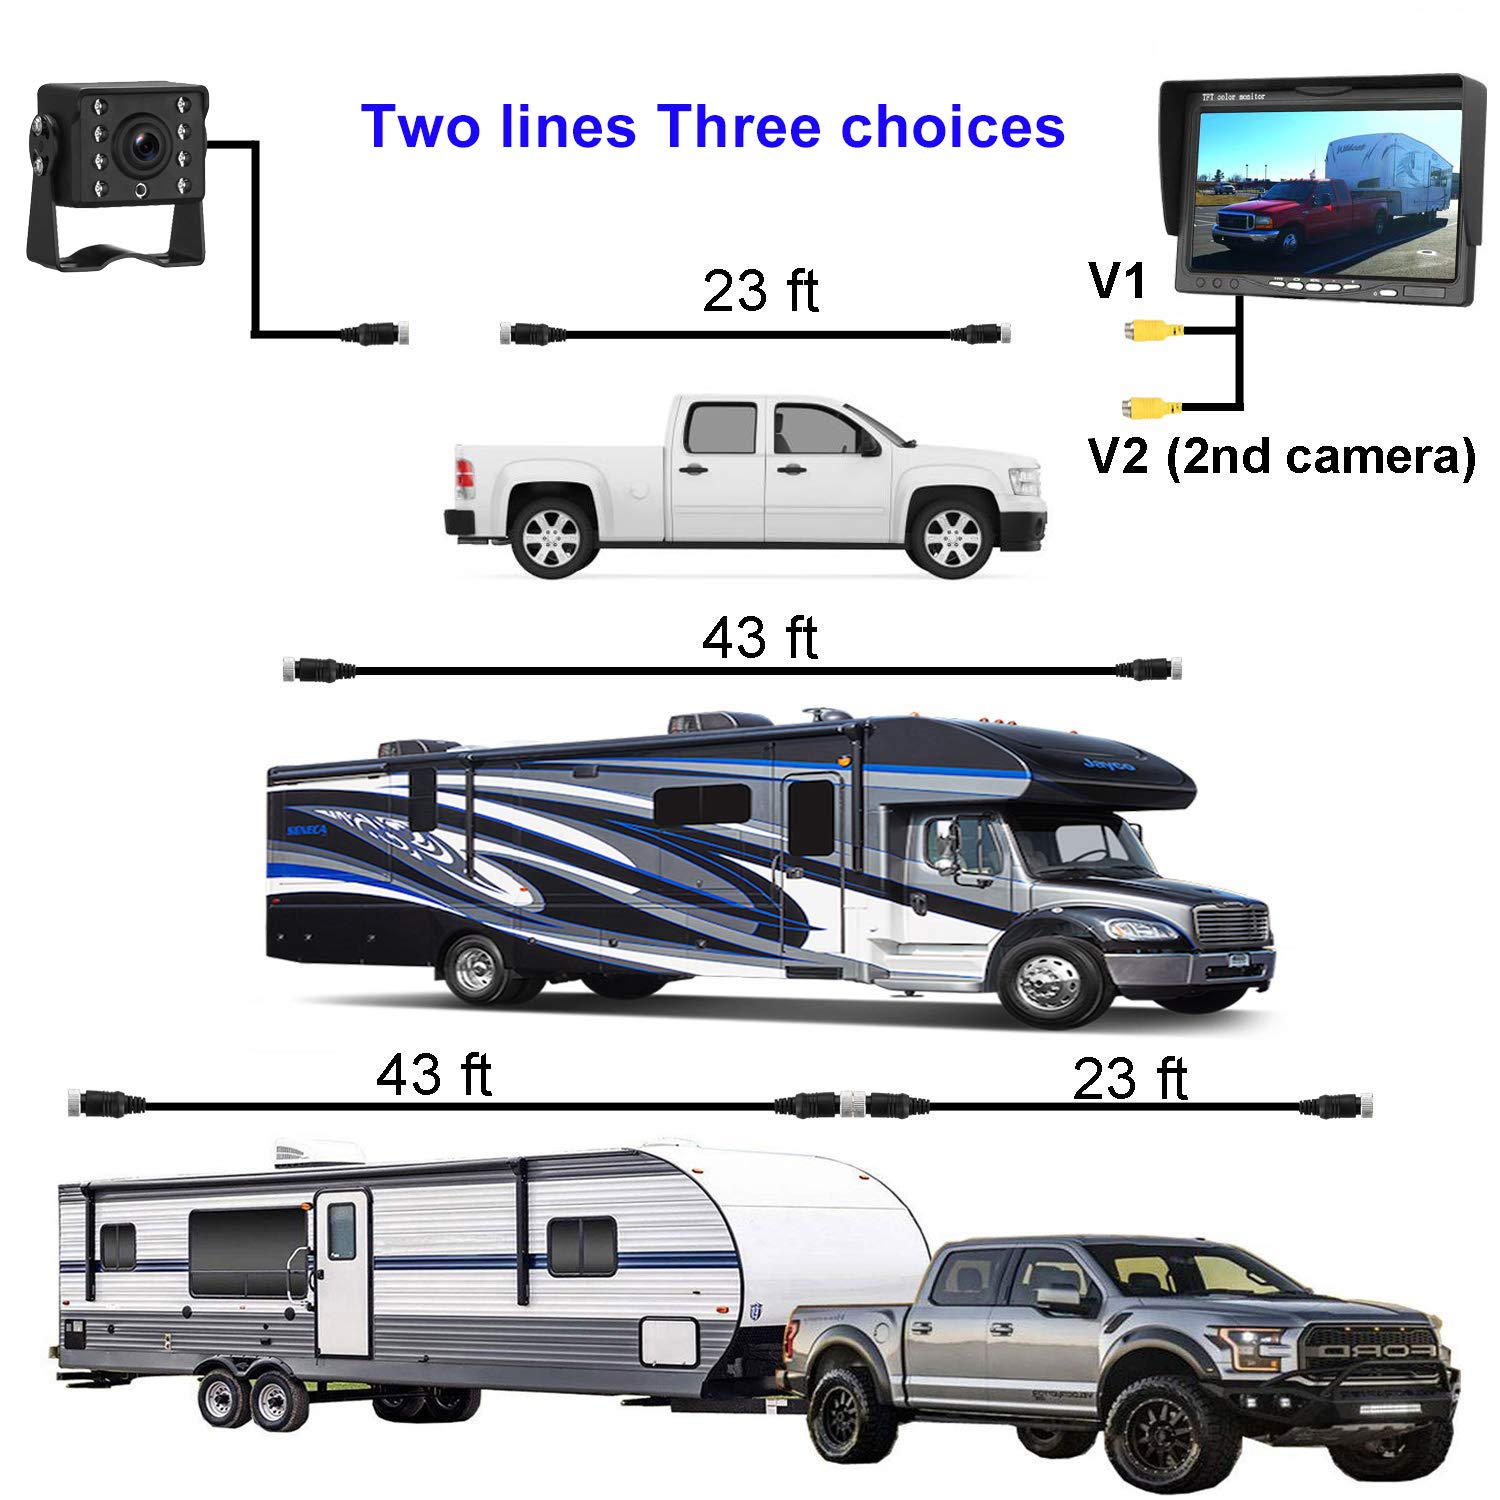 iStrong HD 720P Backup Camera 7 Monitor Kit System For Cars Trucks Trailers Campers Fifth Wheels IP69K Waterproof Night Vision Rear Front View High-Speed Observation System Guide Lines ON OFF